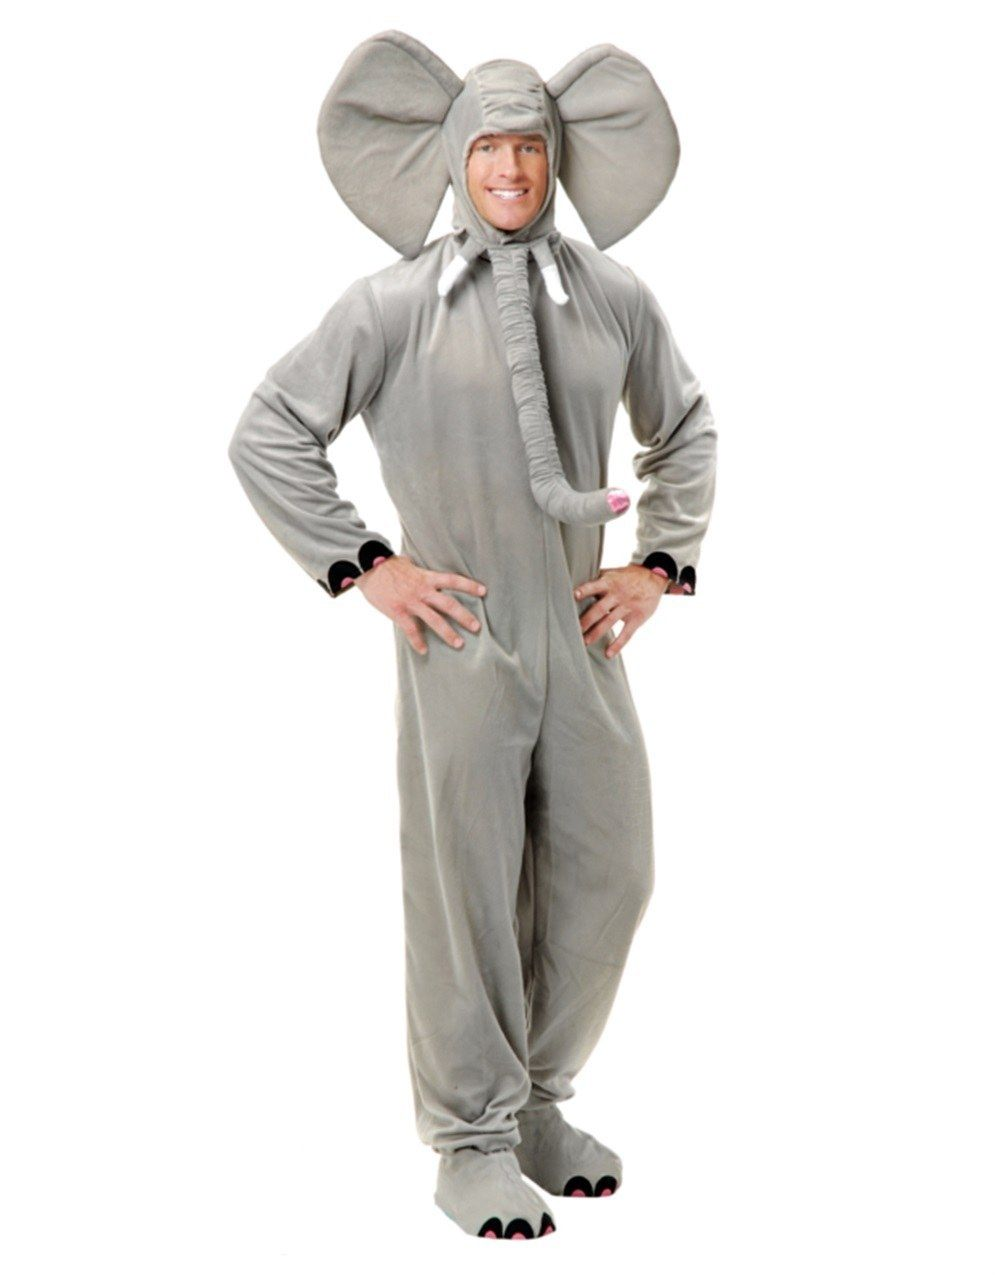 27 halloween costumes for men that will probably make you tingle